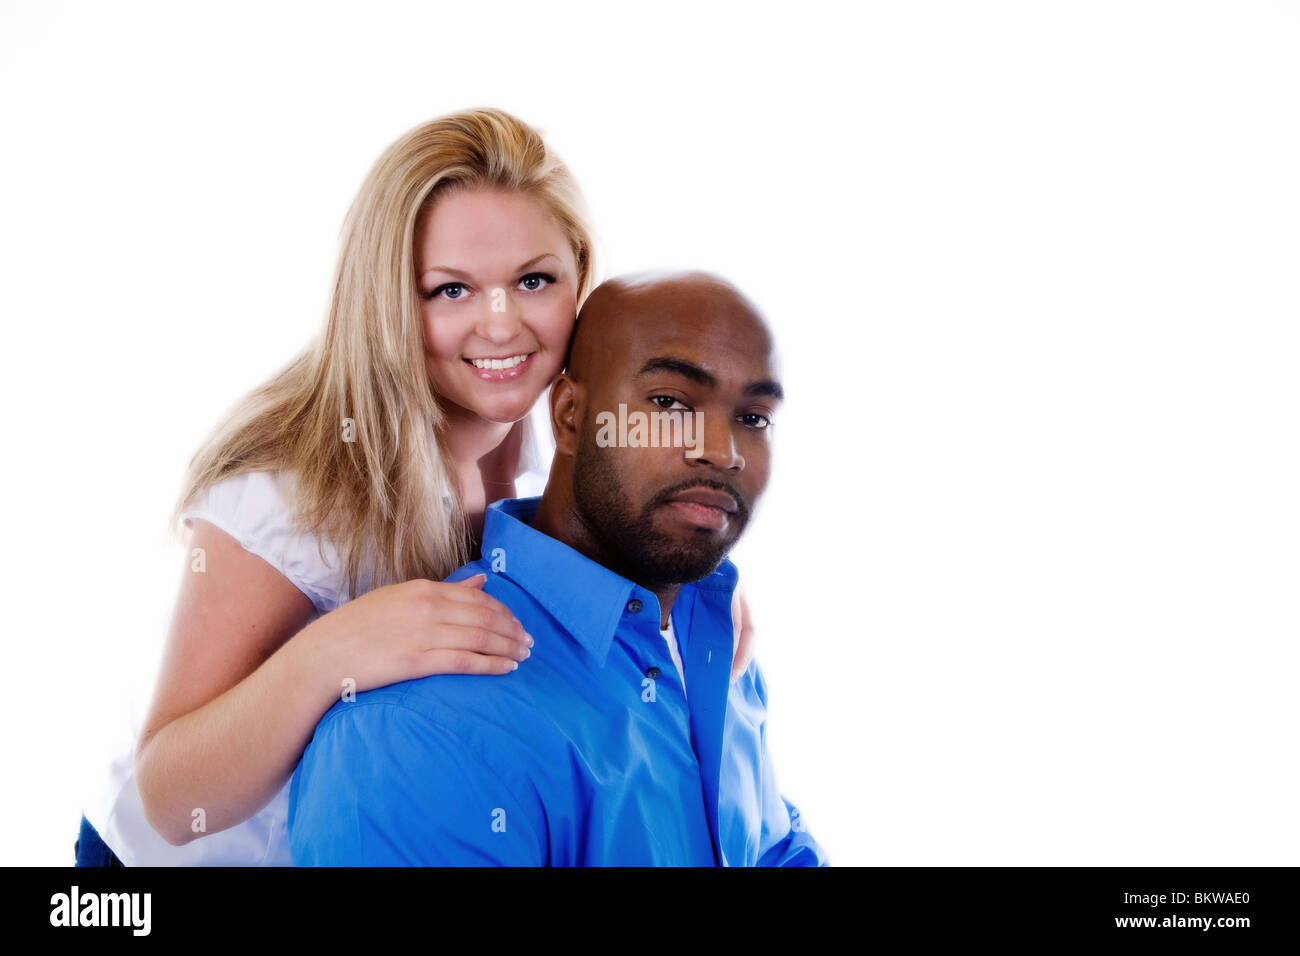 Interracial dating informasjon